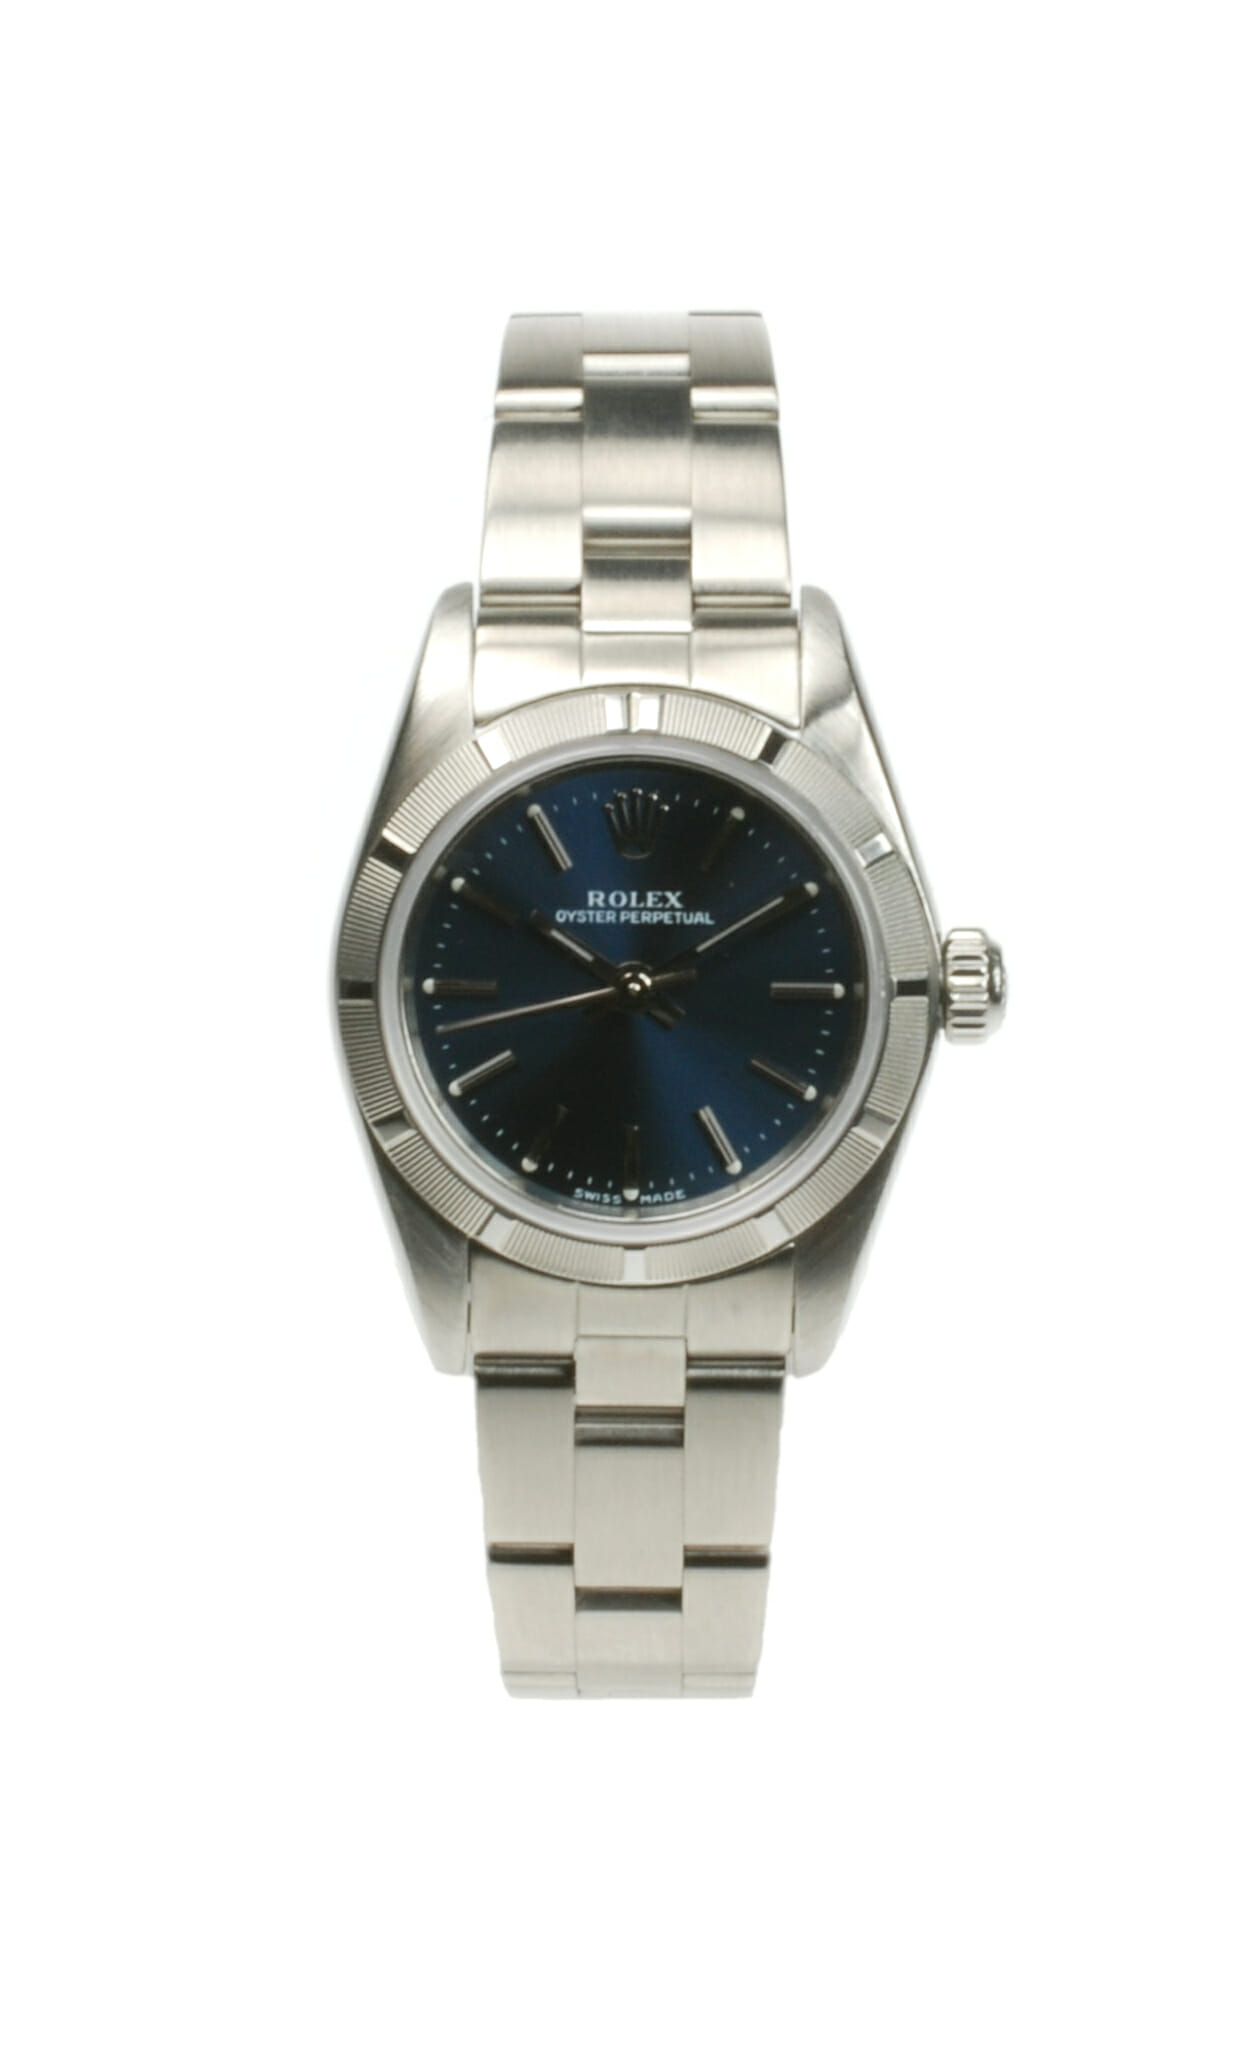 Rolex Oyster Perpetual 76030 From 1998 Pre-Owned Watch